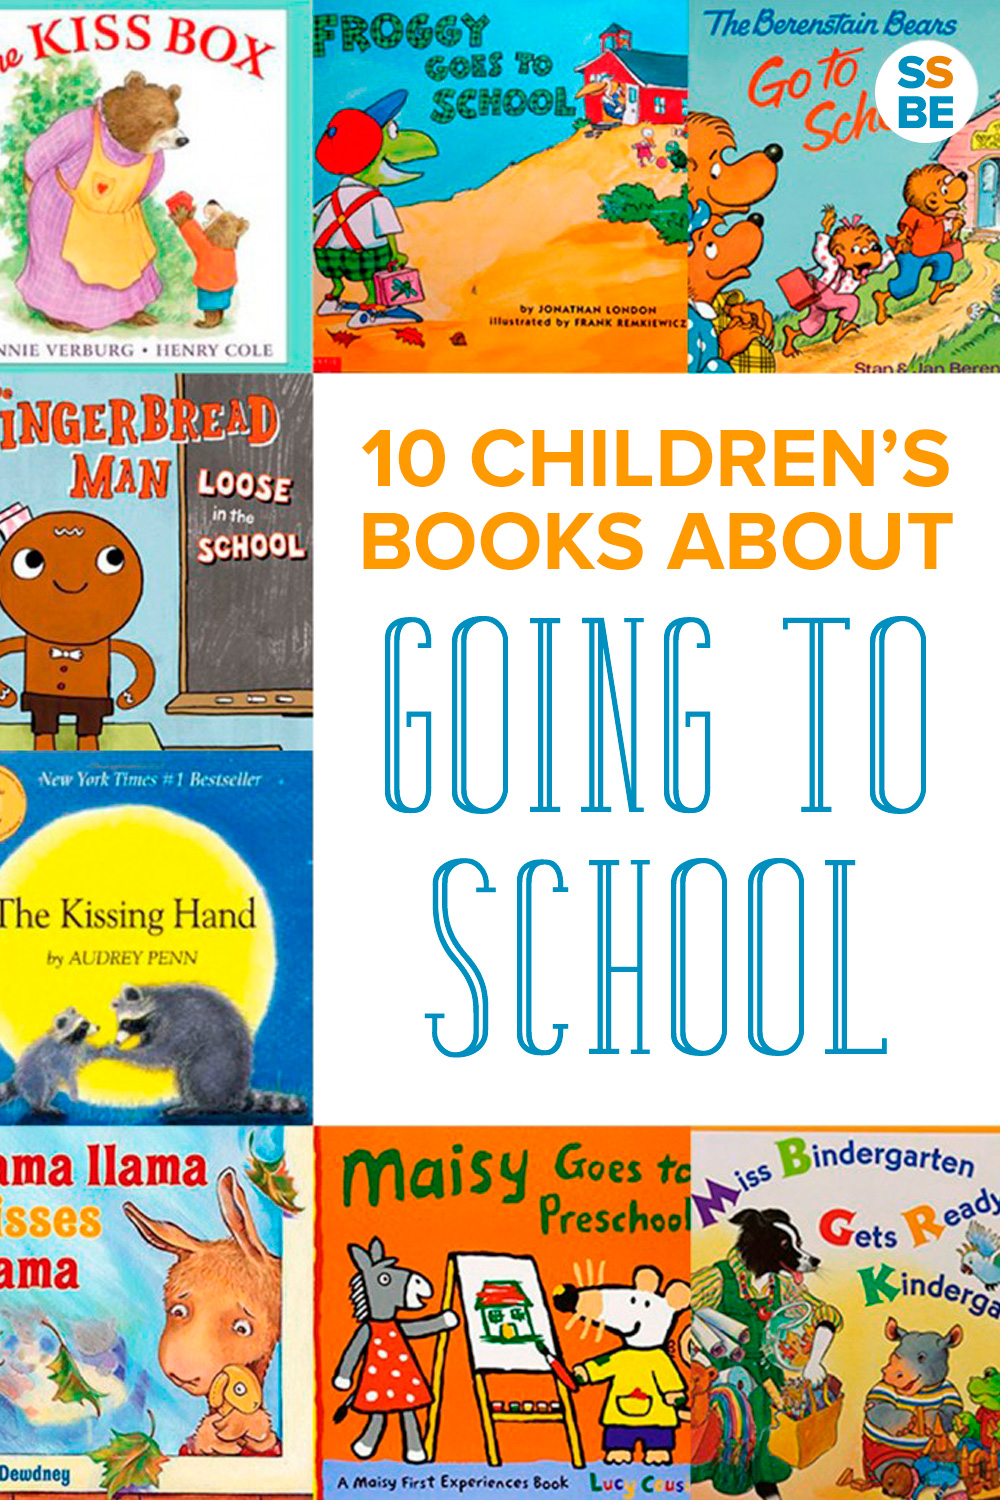 Is your child going to school for the first time? Read these 10 children's books about going to school to get him excited and ready for the big day.